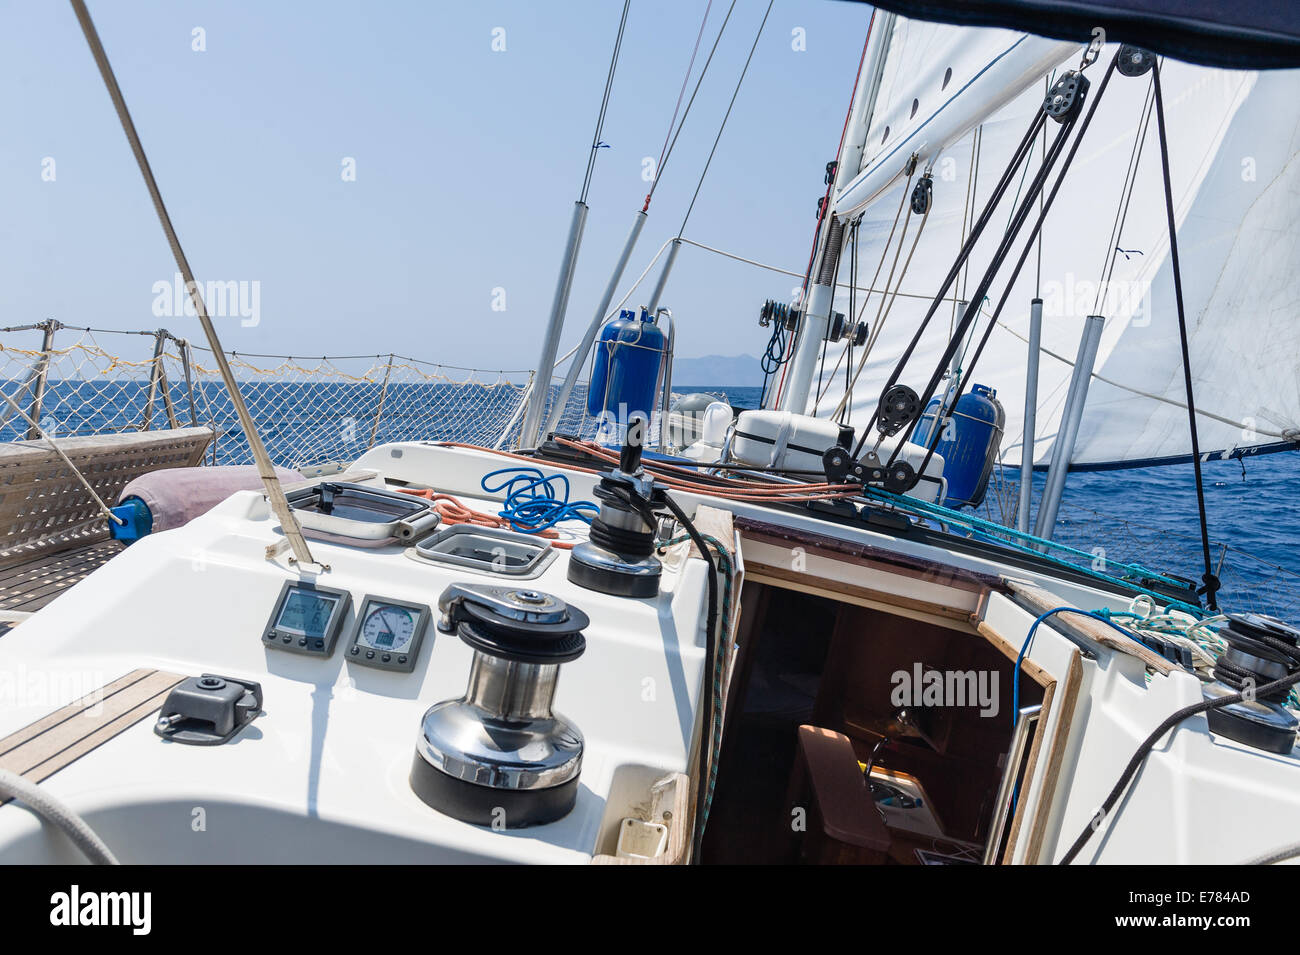 Sailing yacht going fast on full sails - Stock Image